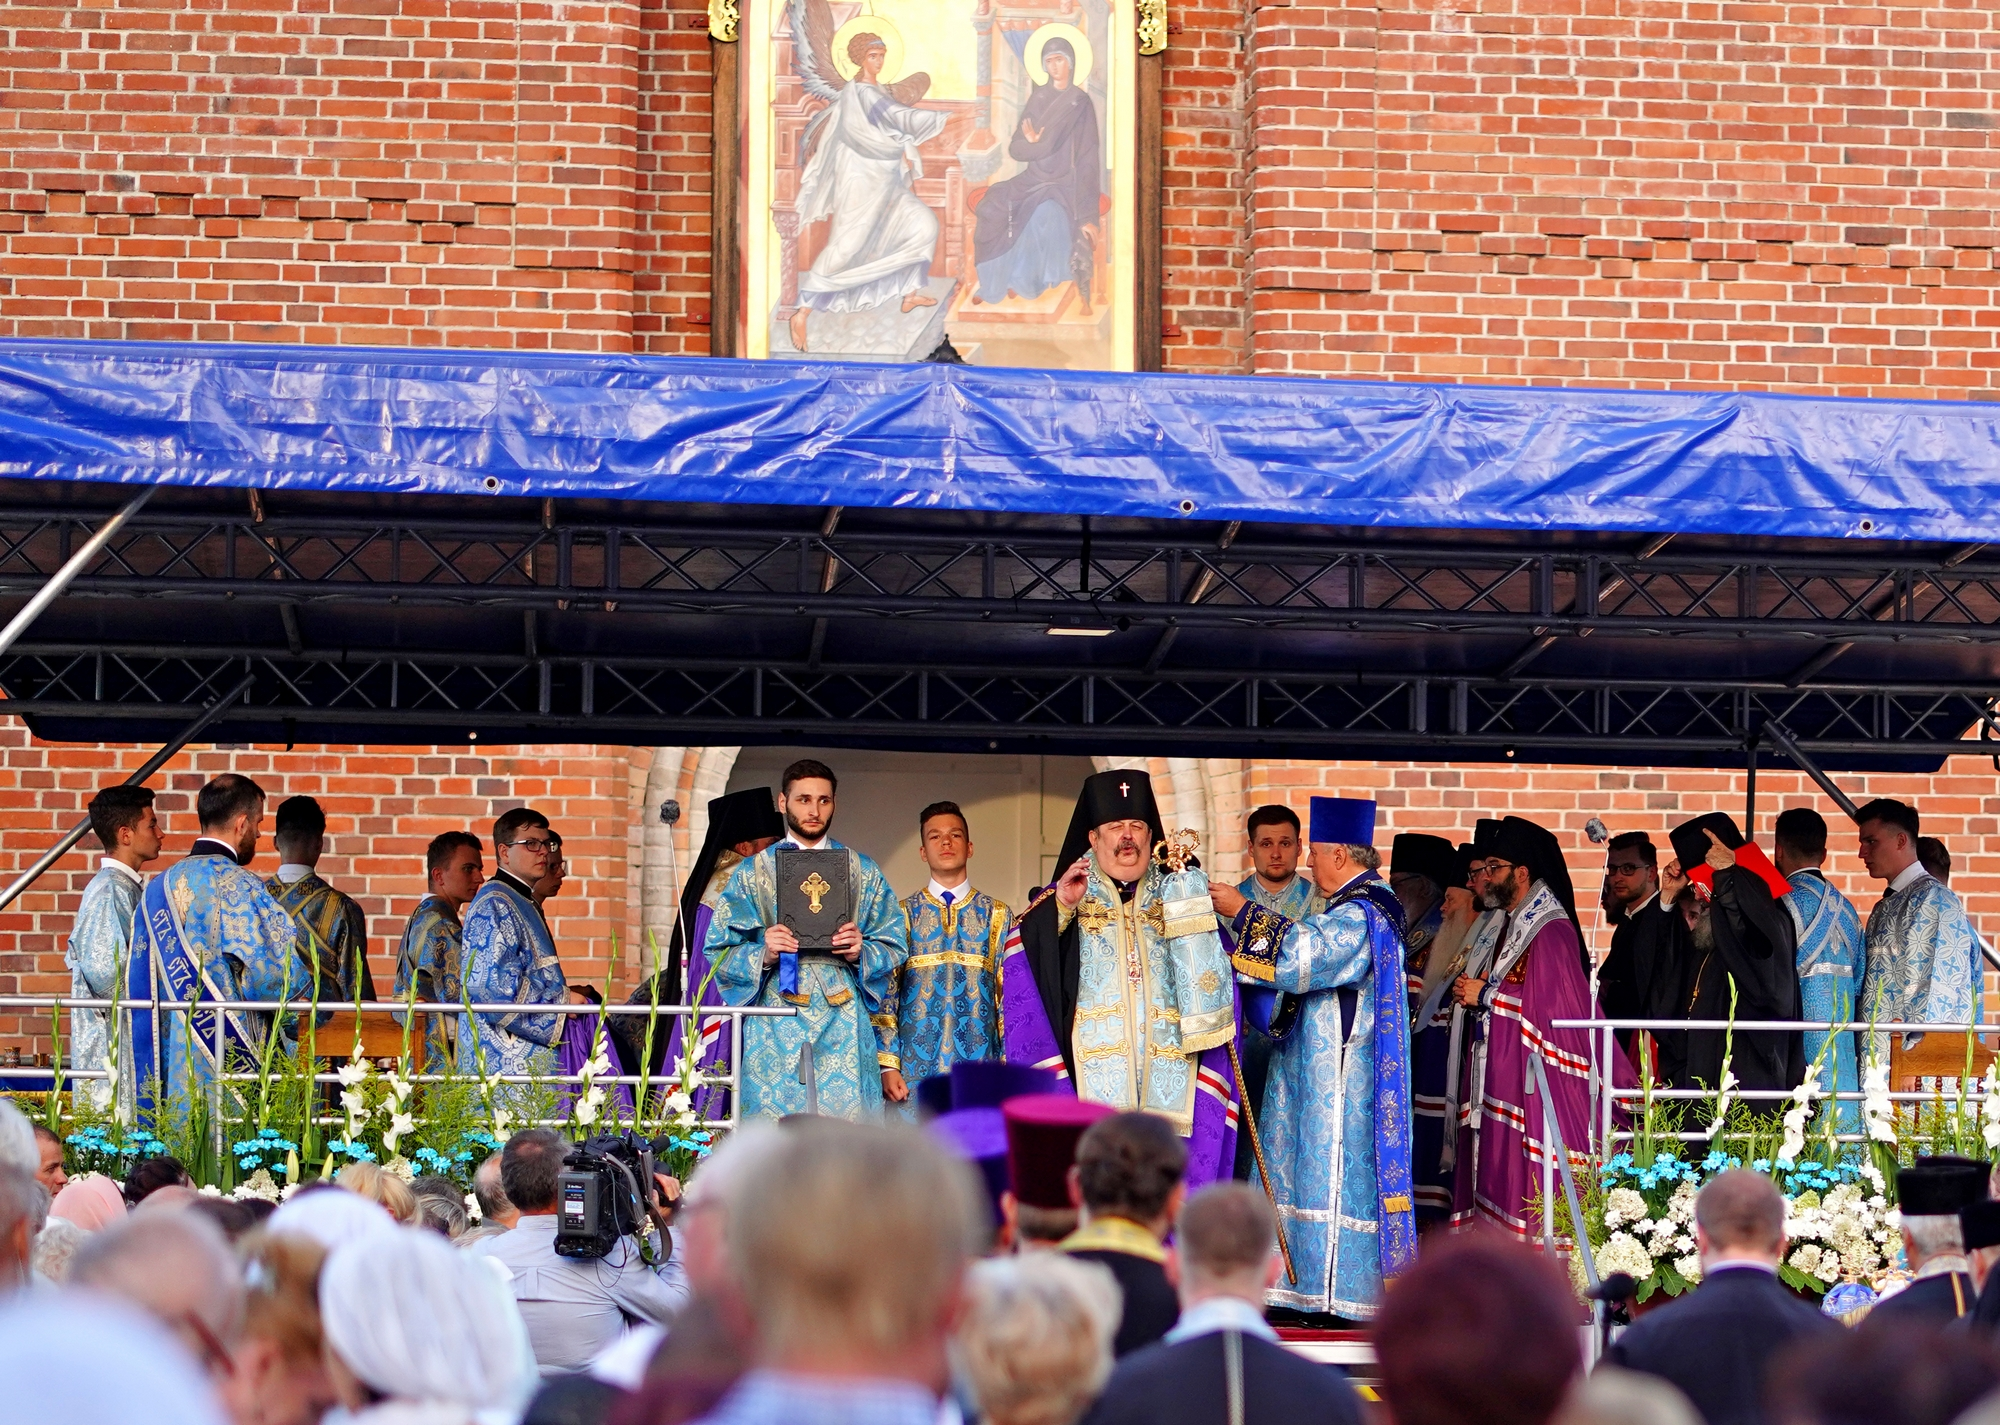 The All Night-Vigil of the feast of Supraśl Icon of the Mother of God in Suprasl Monastery